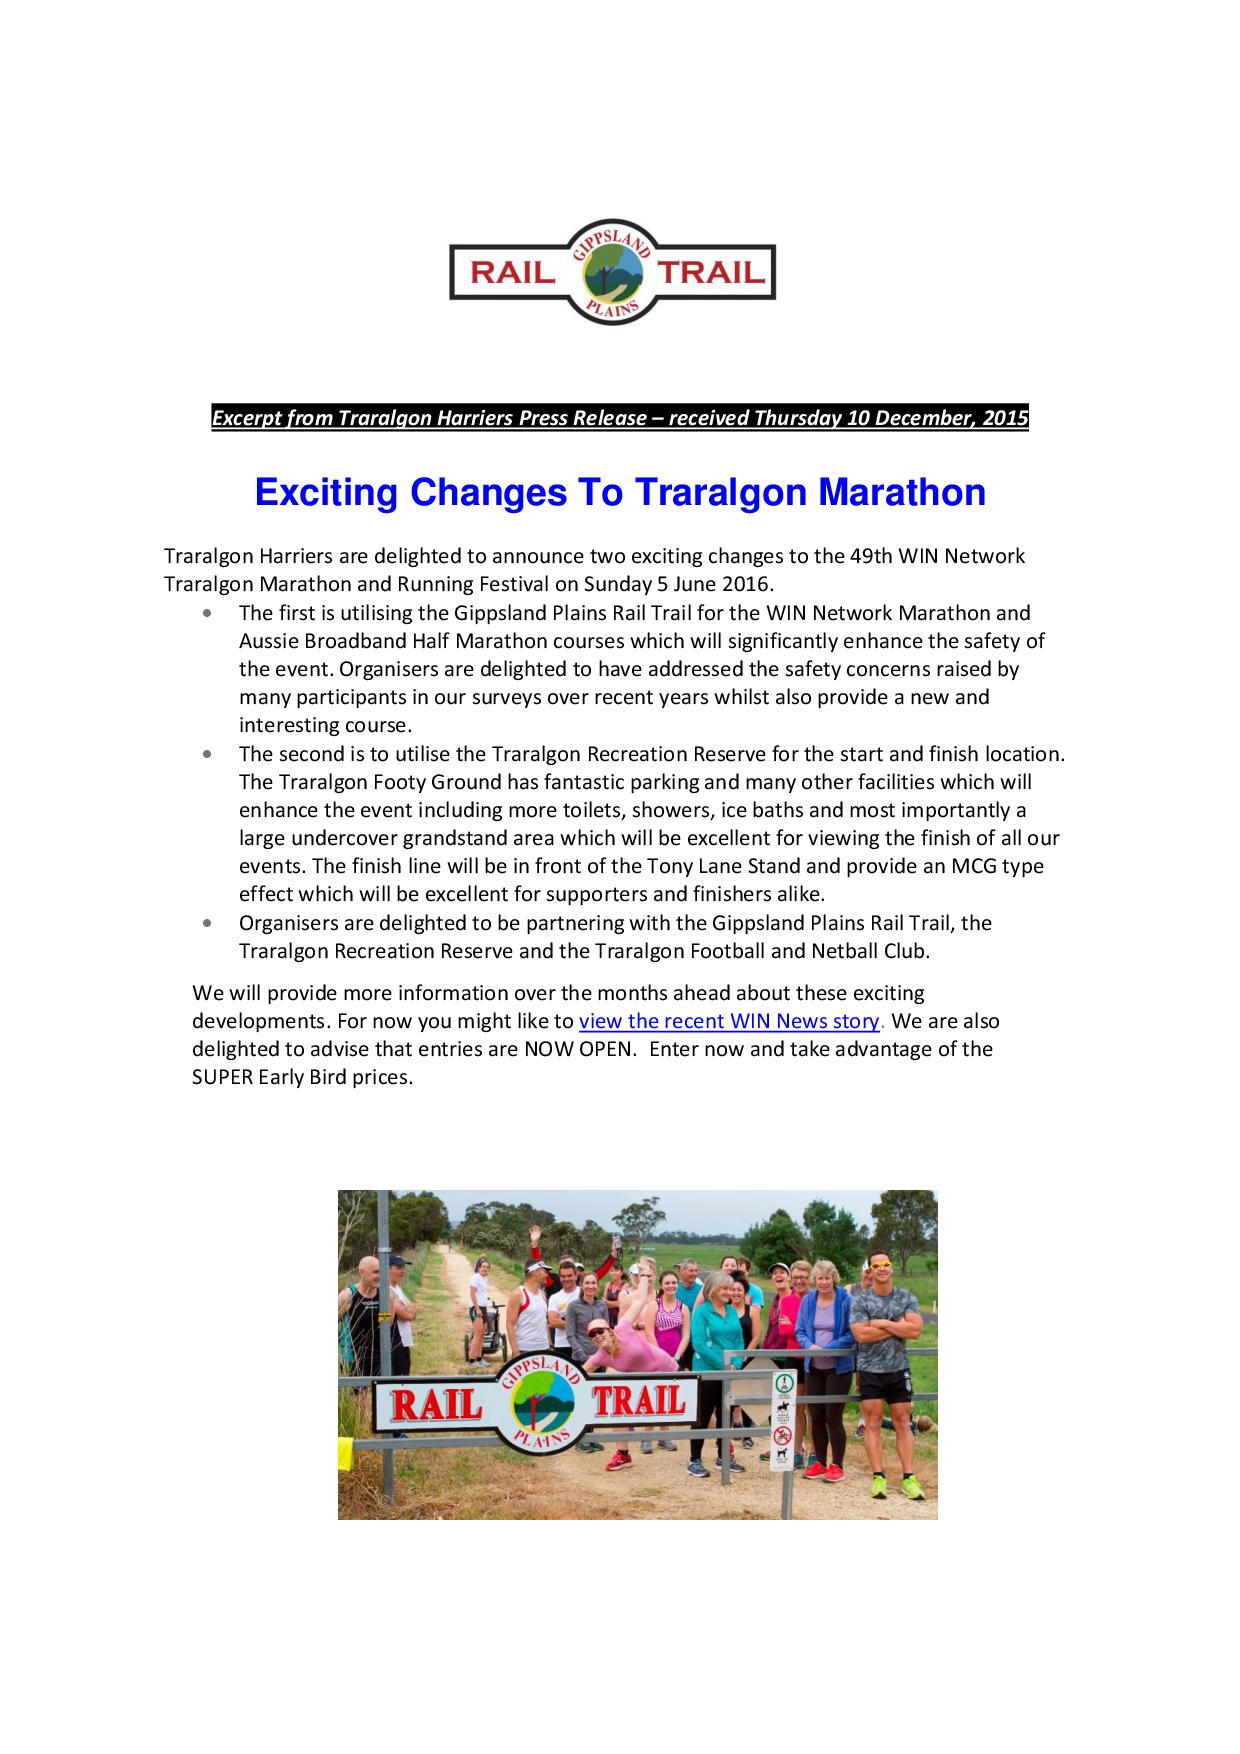 Excerpt from Traralgon Harriers Press Release 10 December 2015 1